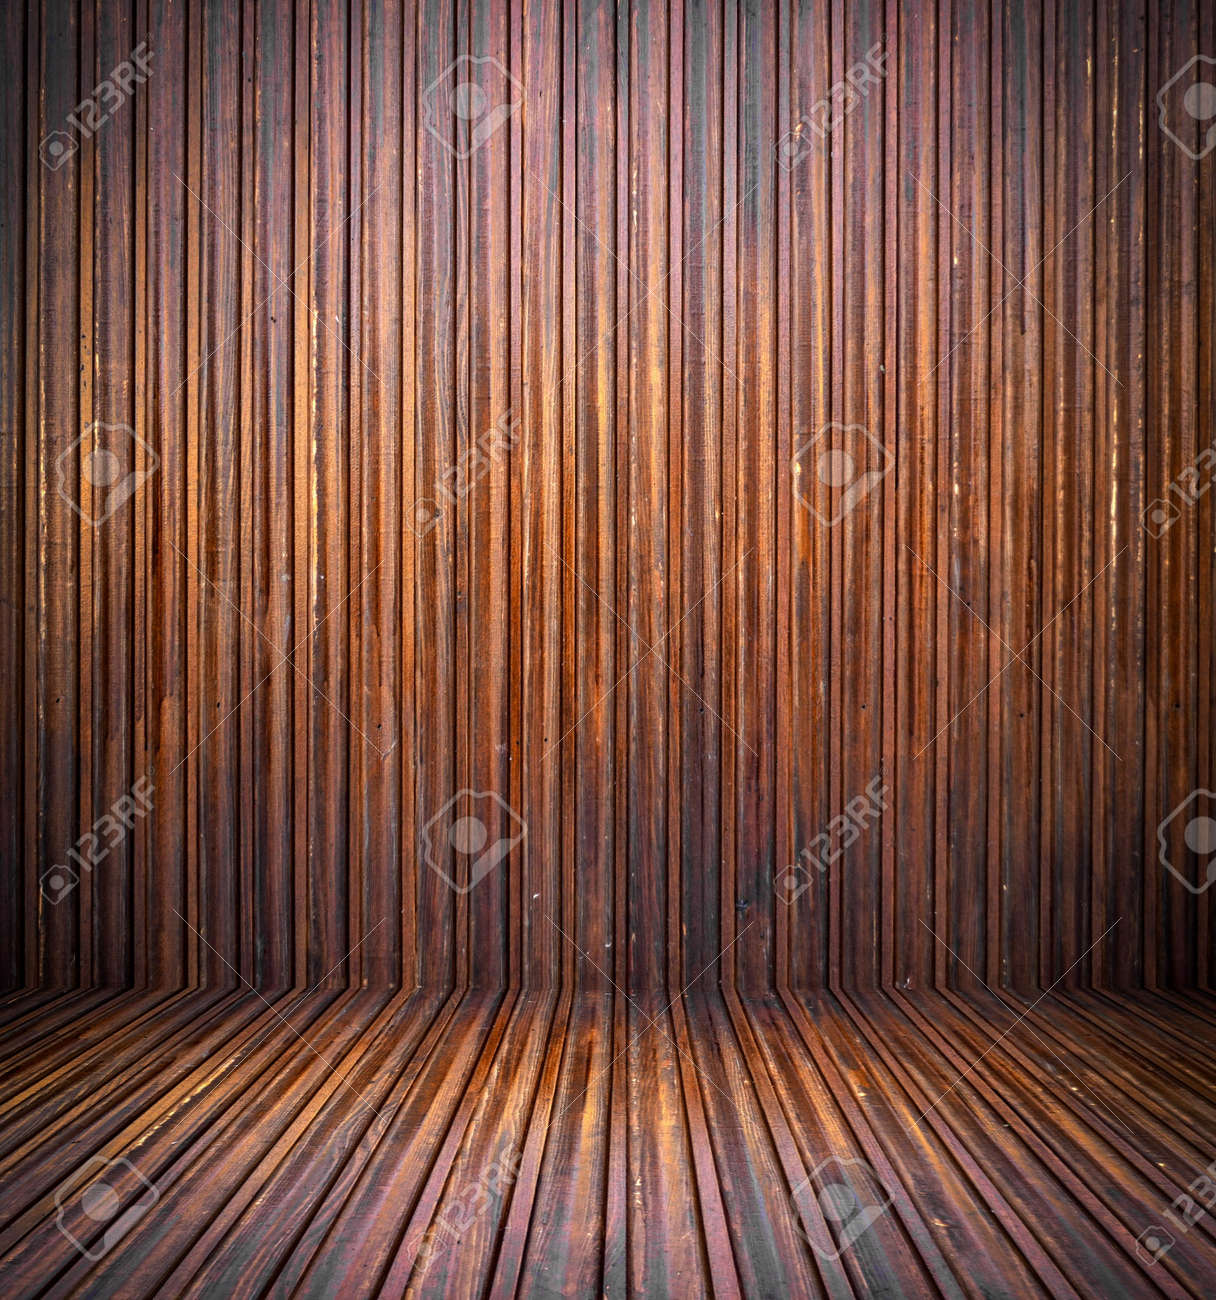 Abstract interior with parquet wooden floor Stock Photo - 18446236